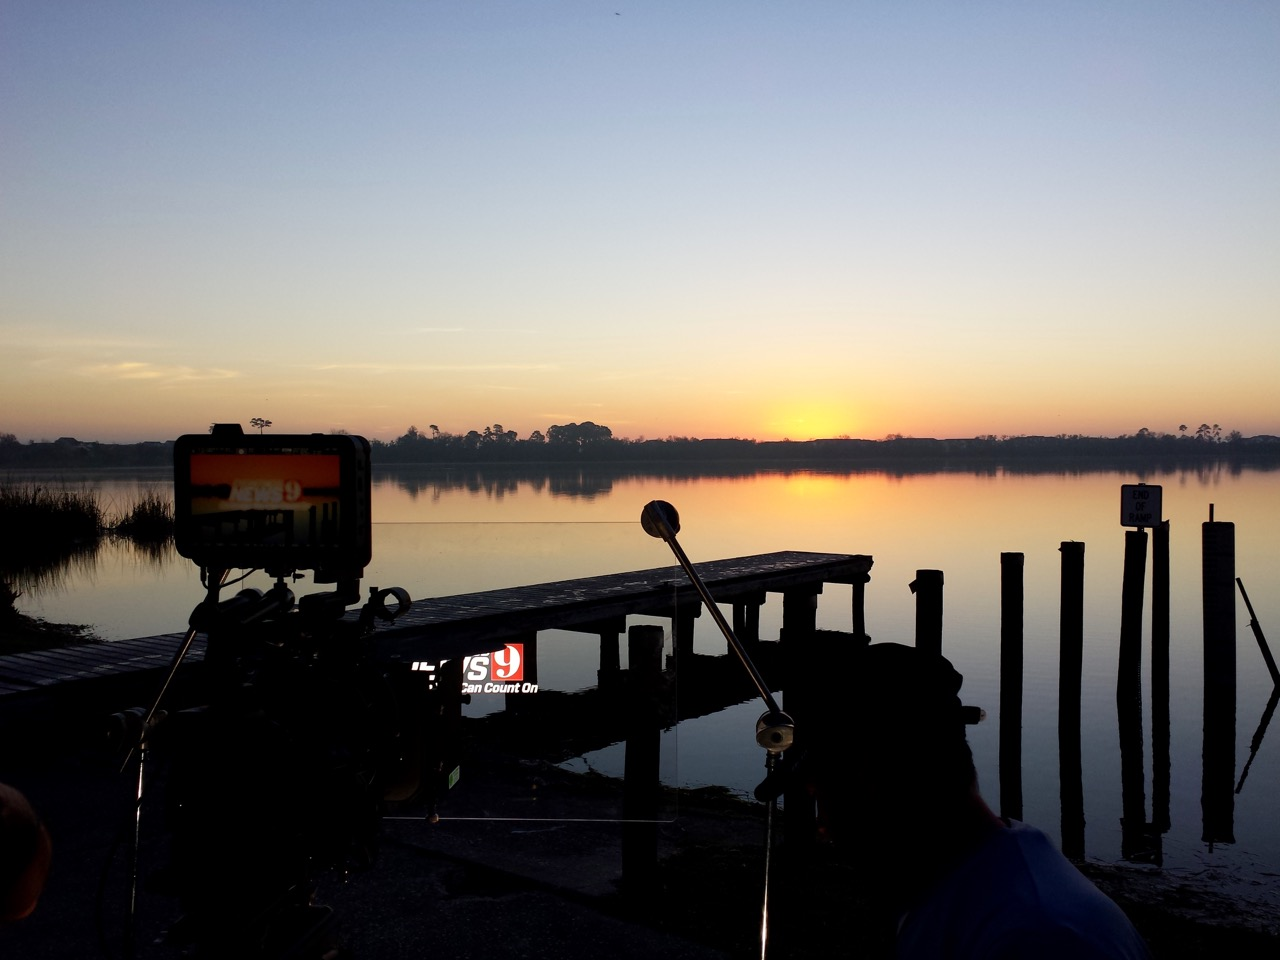 VIDEO PRODUCTION ON THE LAKE IN ORLANDO